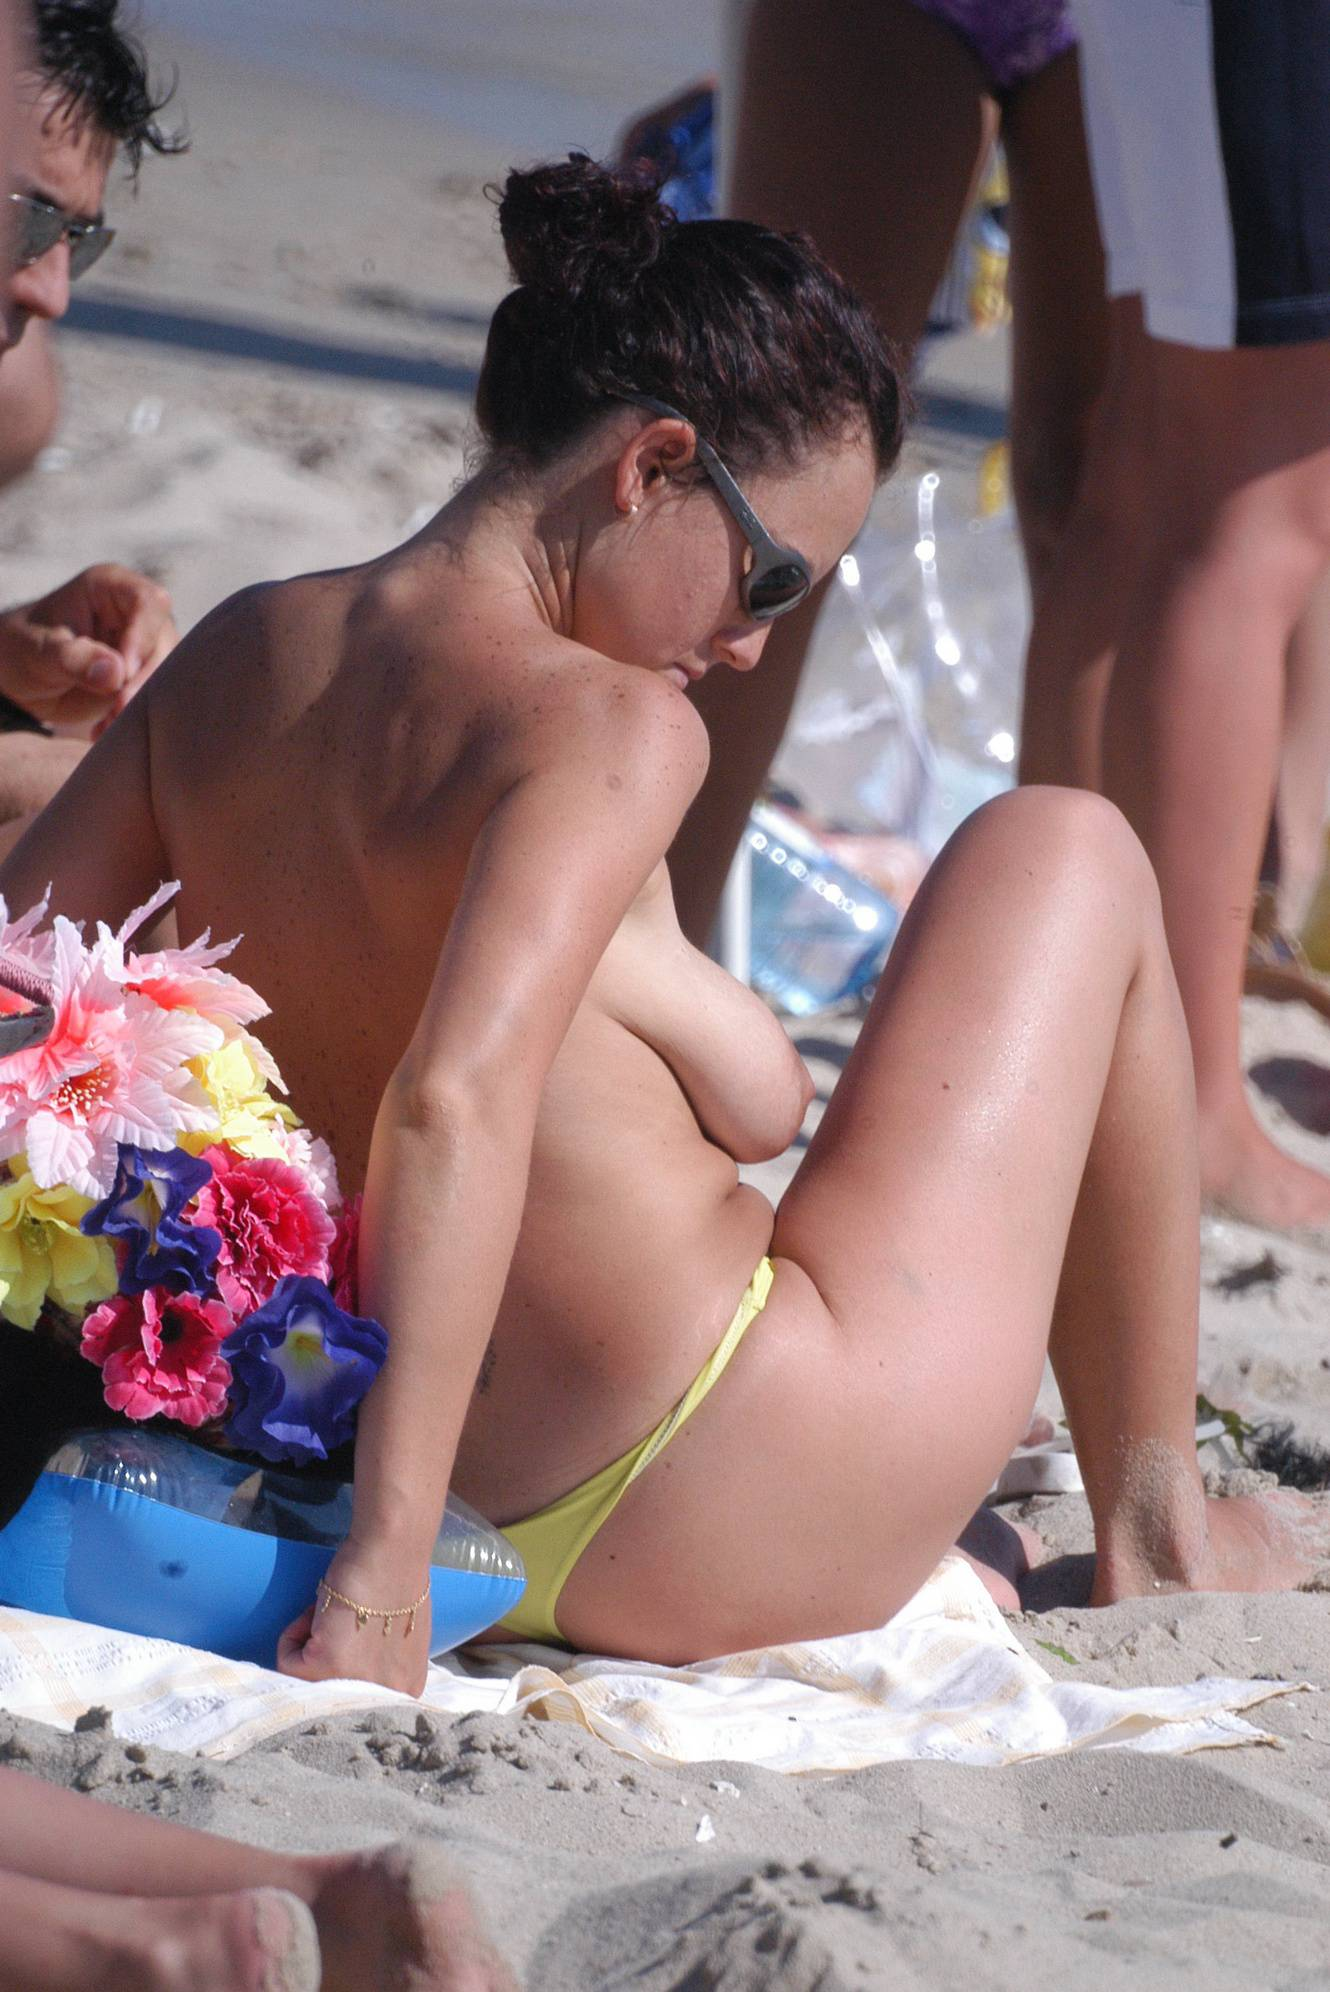 Nudist Pics Verna Topless Beach HQ - 1